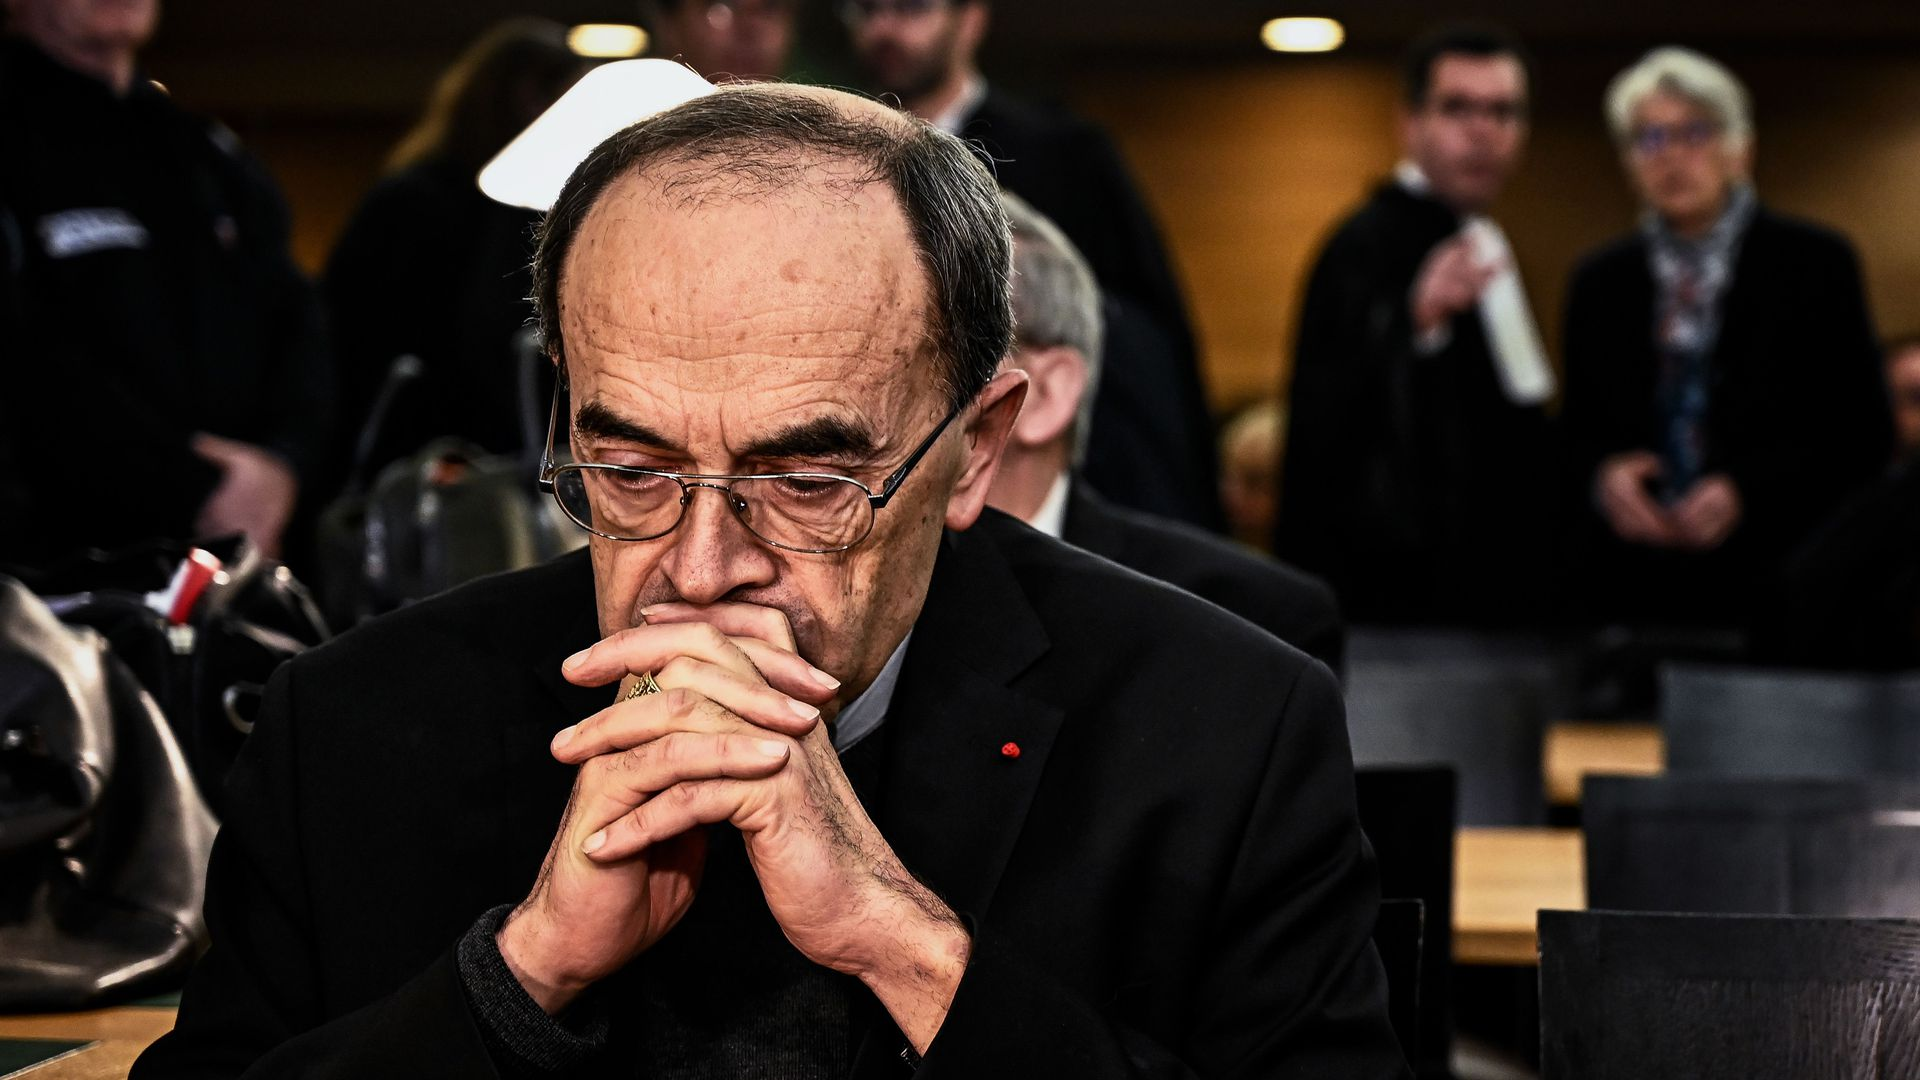 Cardinal Philippe Barbarin had pleaded not guilty to the charges.